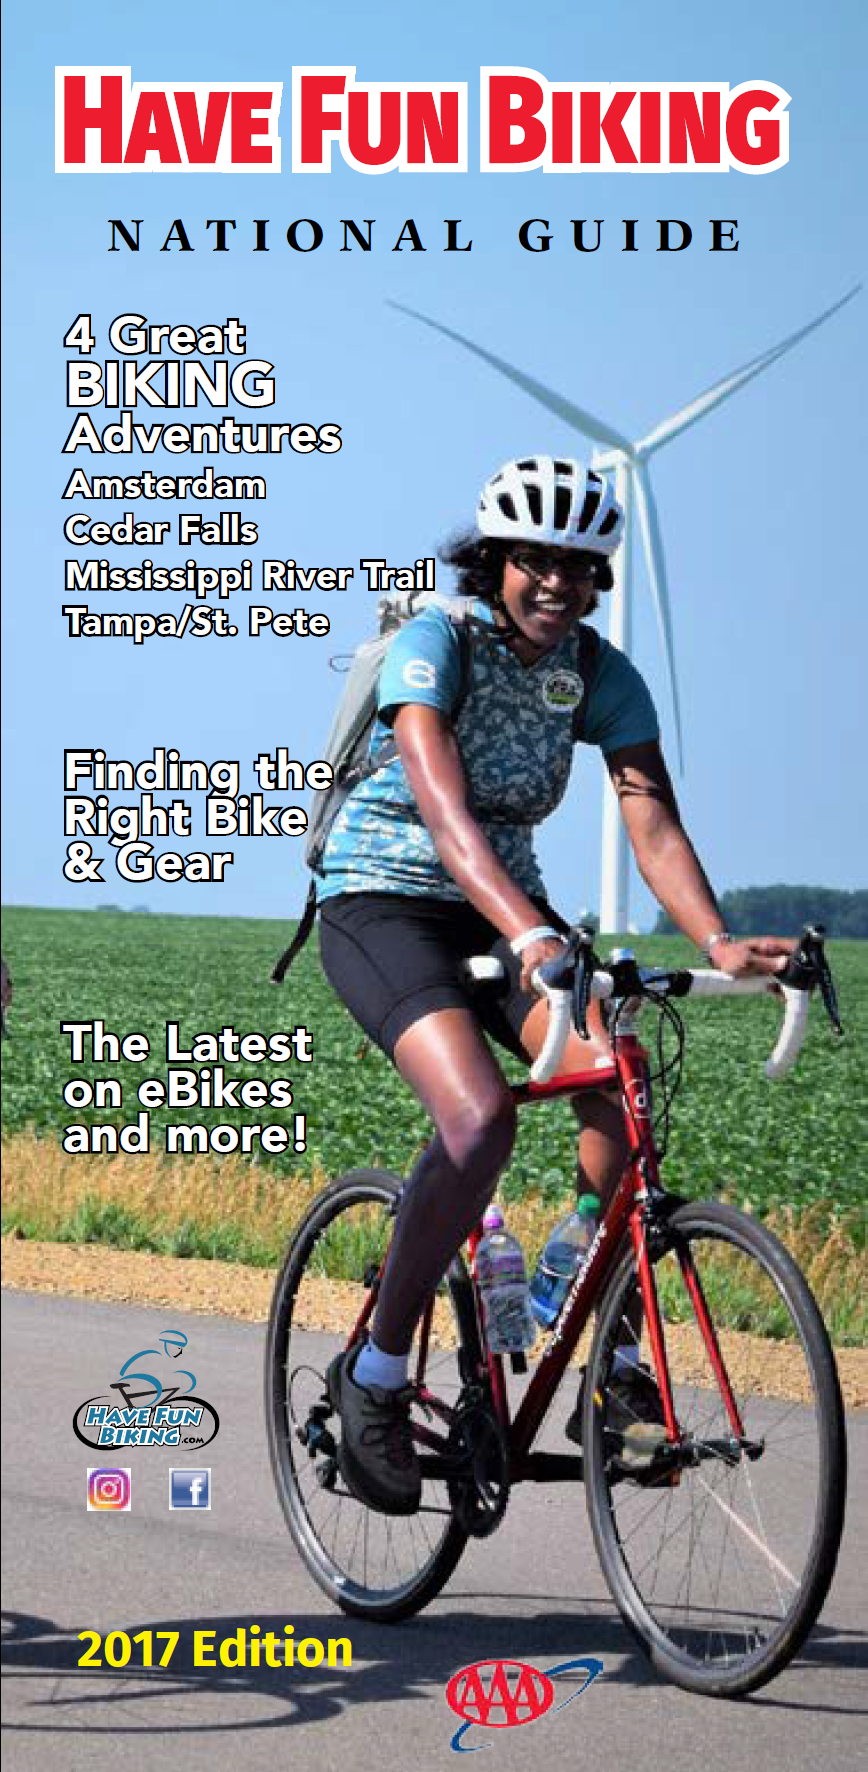 This new national bicycle guide offers bicyclists of all levels easily access the latest information onplaces to ride a bike, helpful tips and more.